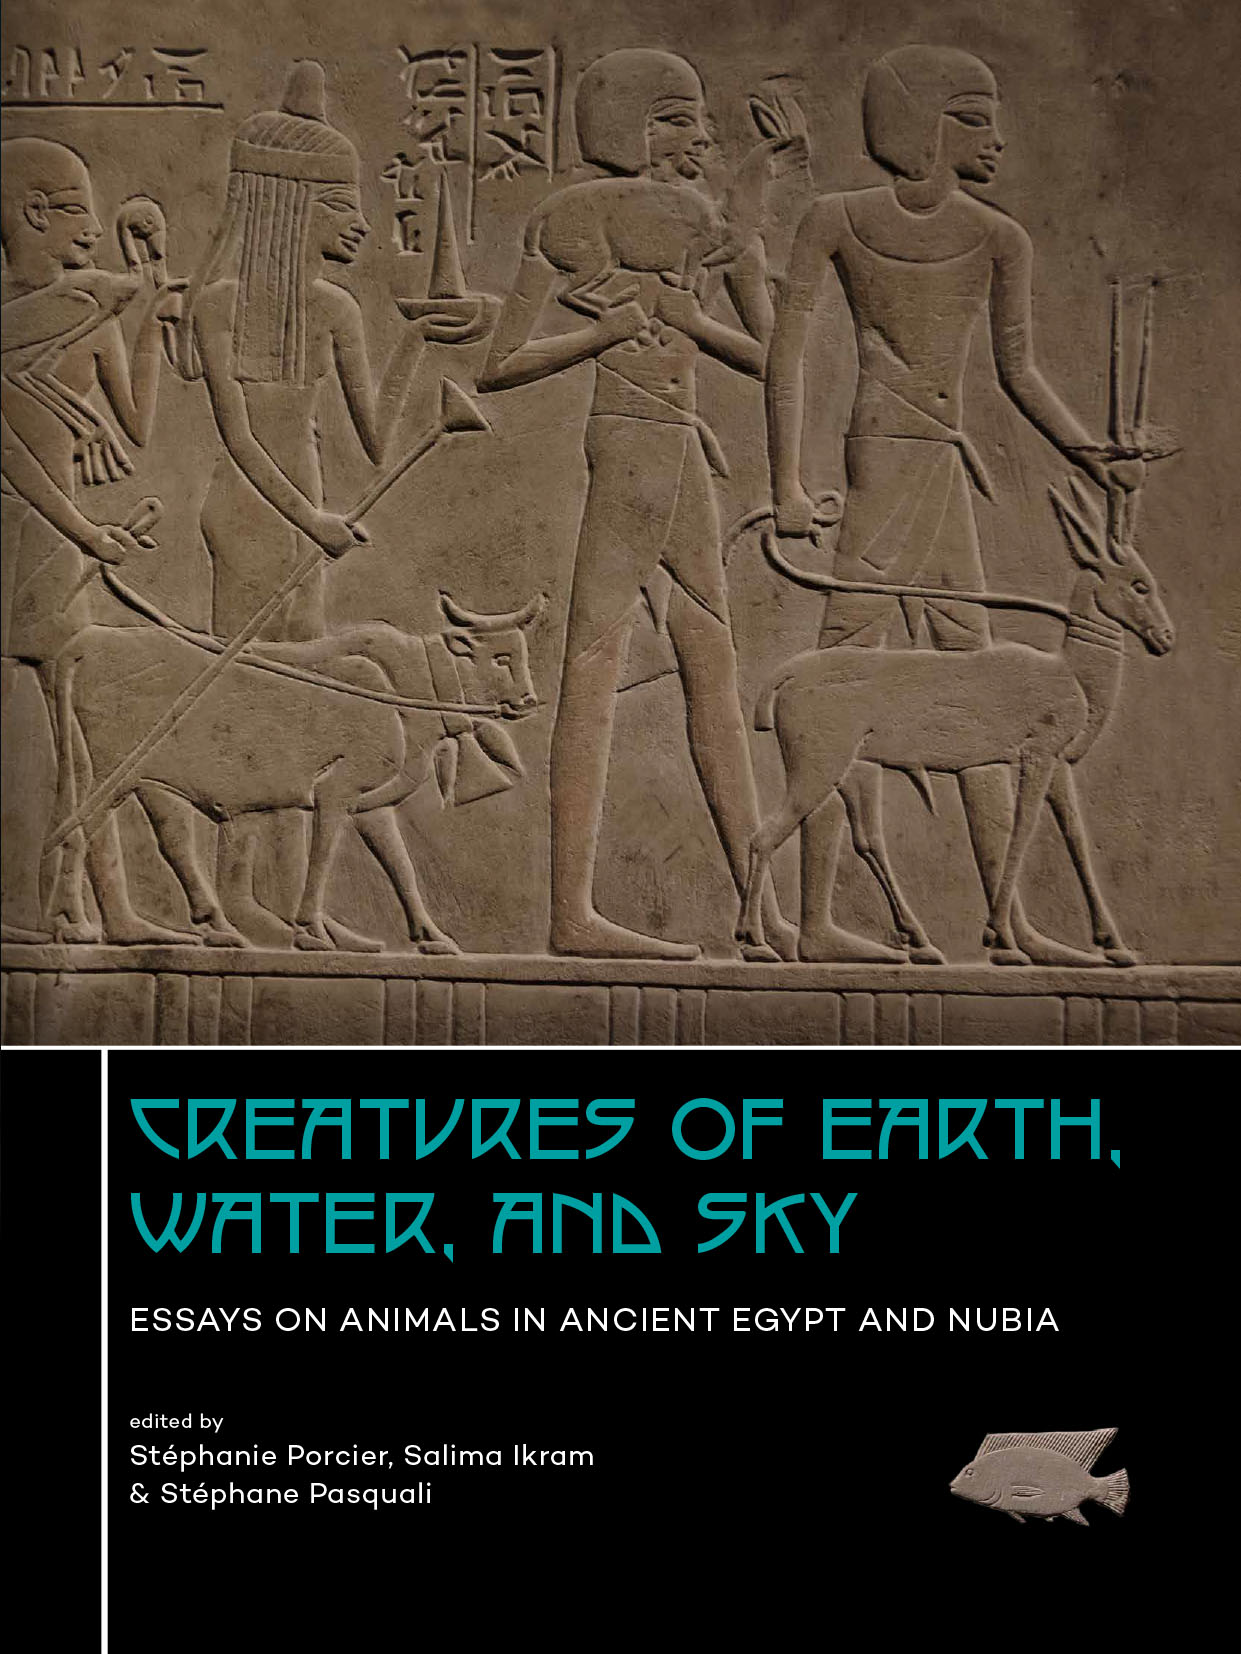 Persuasive Essays Examples For High School Fc  Category Ancient Egypt Mummy Mummification Bioarchaeology  Saqqara Nubia Catacomb Animal Necropolis Archaeozoology Disease  Radiography  Examples Of Essays For High School also Essay About Learning English Language Creatures Of Earth Water And Sky Essay About Healthy Diet